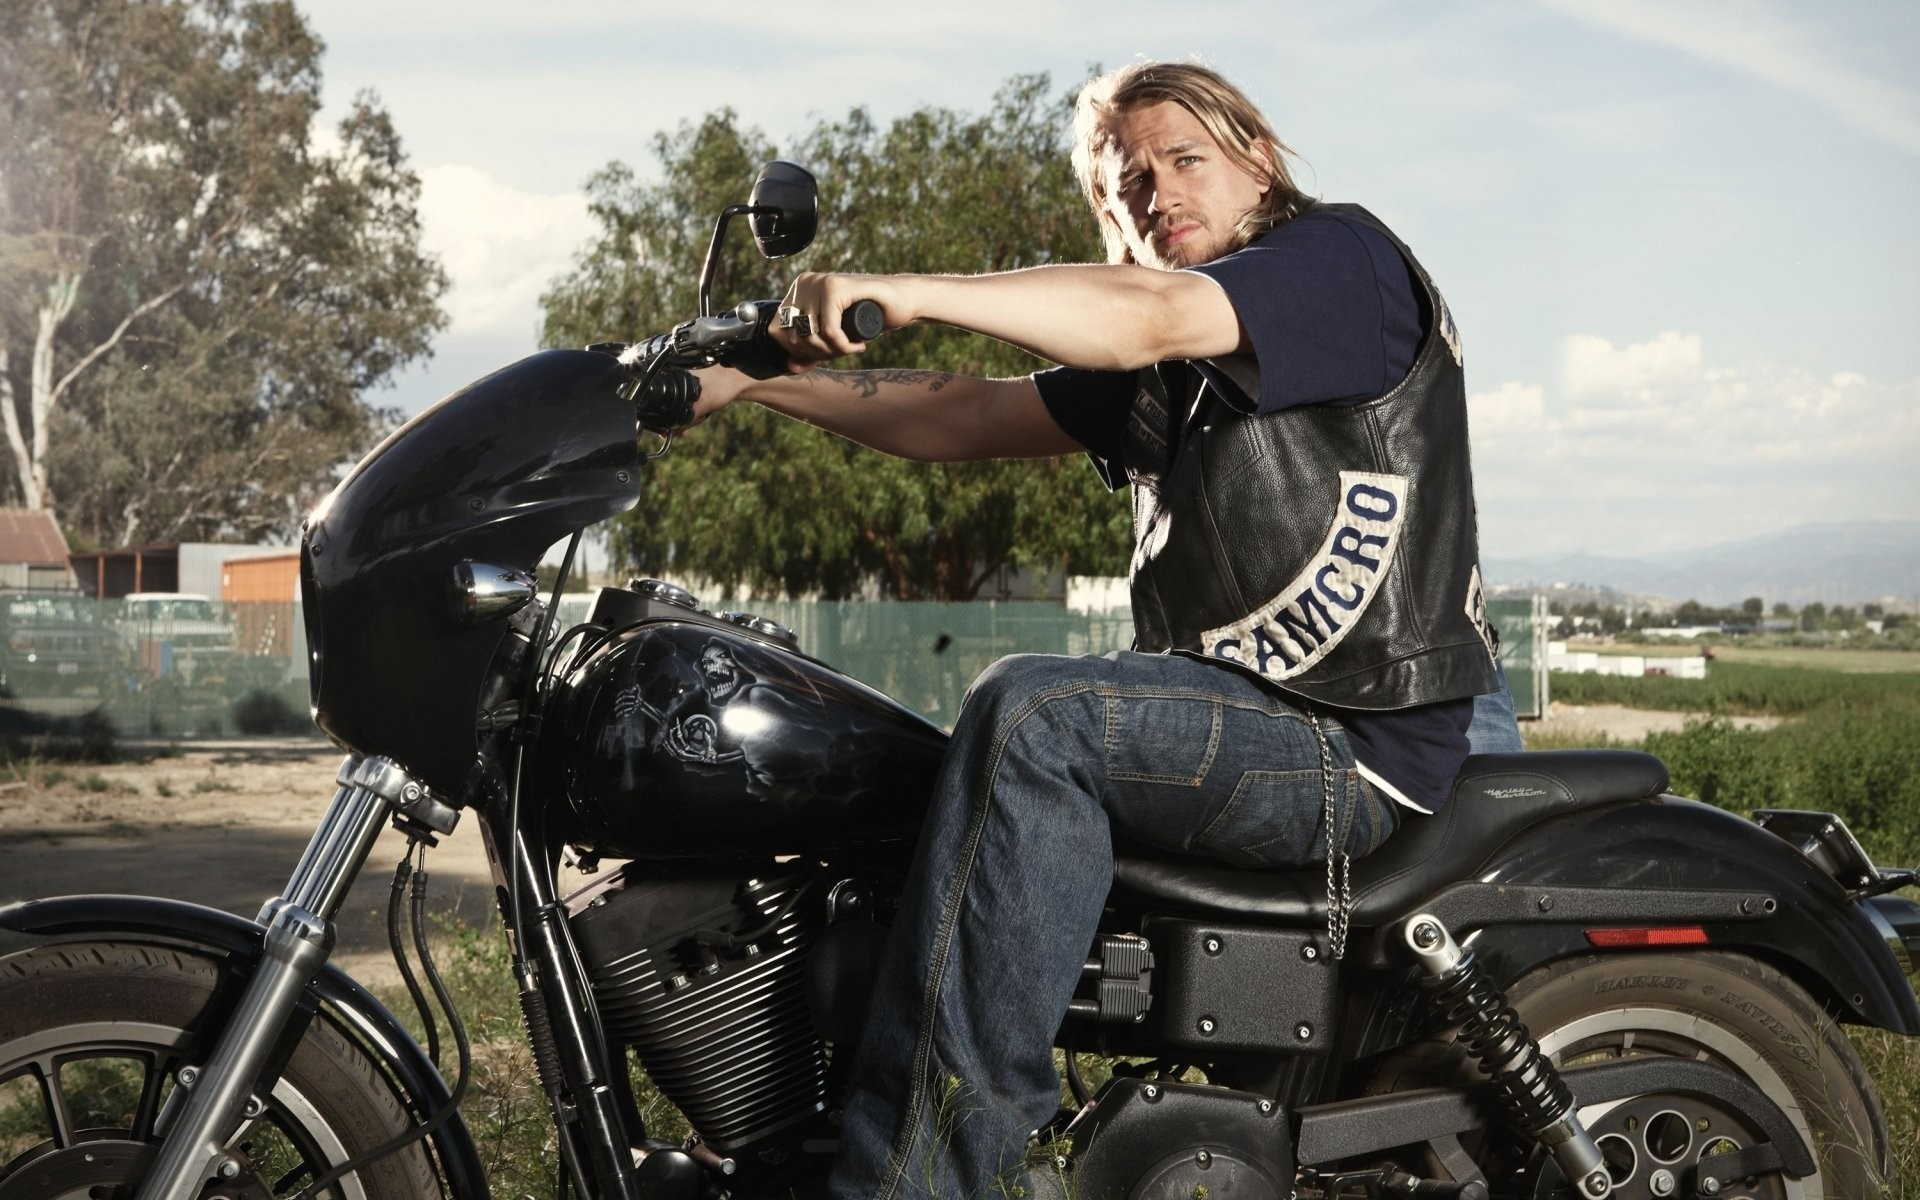 sons of anarchy sons of anarchy tv series charlie hunnam jackson 'jax'  teller men